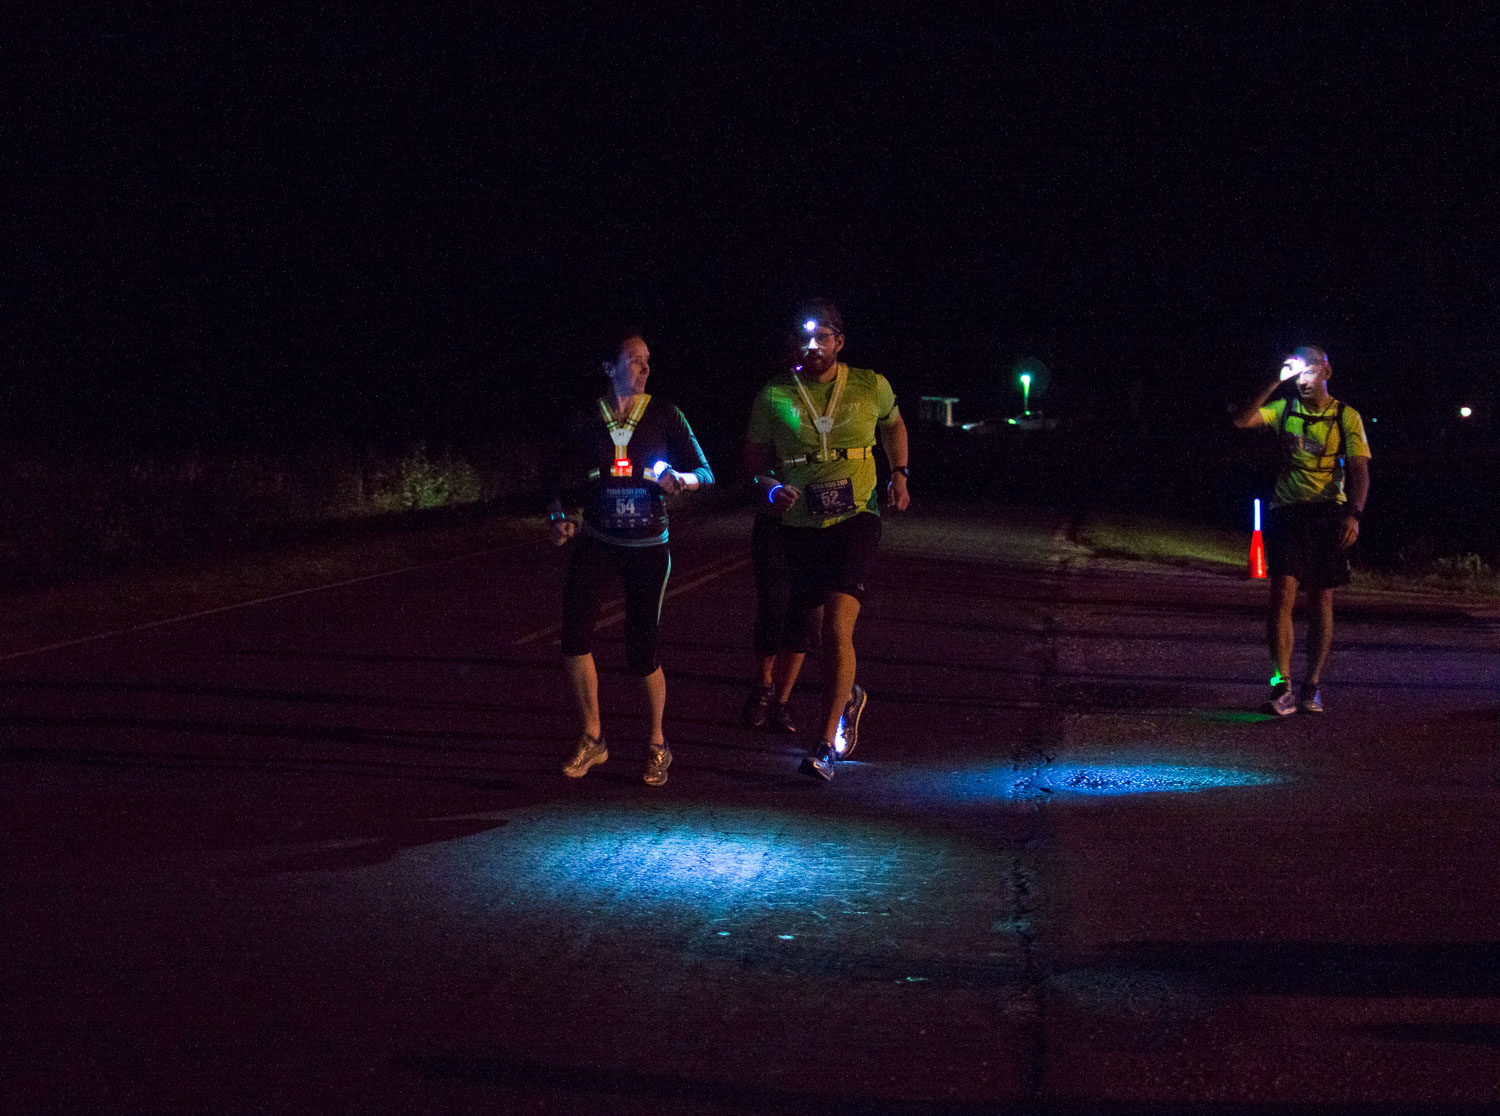 Tuna Run 200 Race Report - Leg 2 - Night running